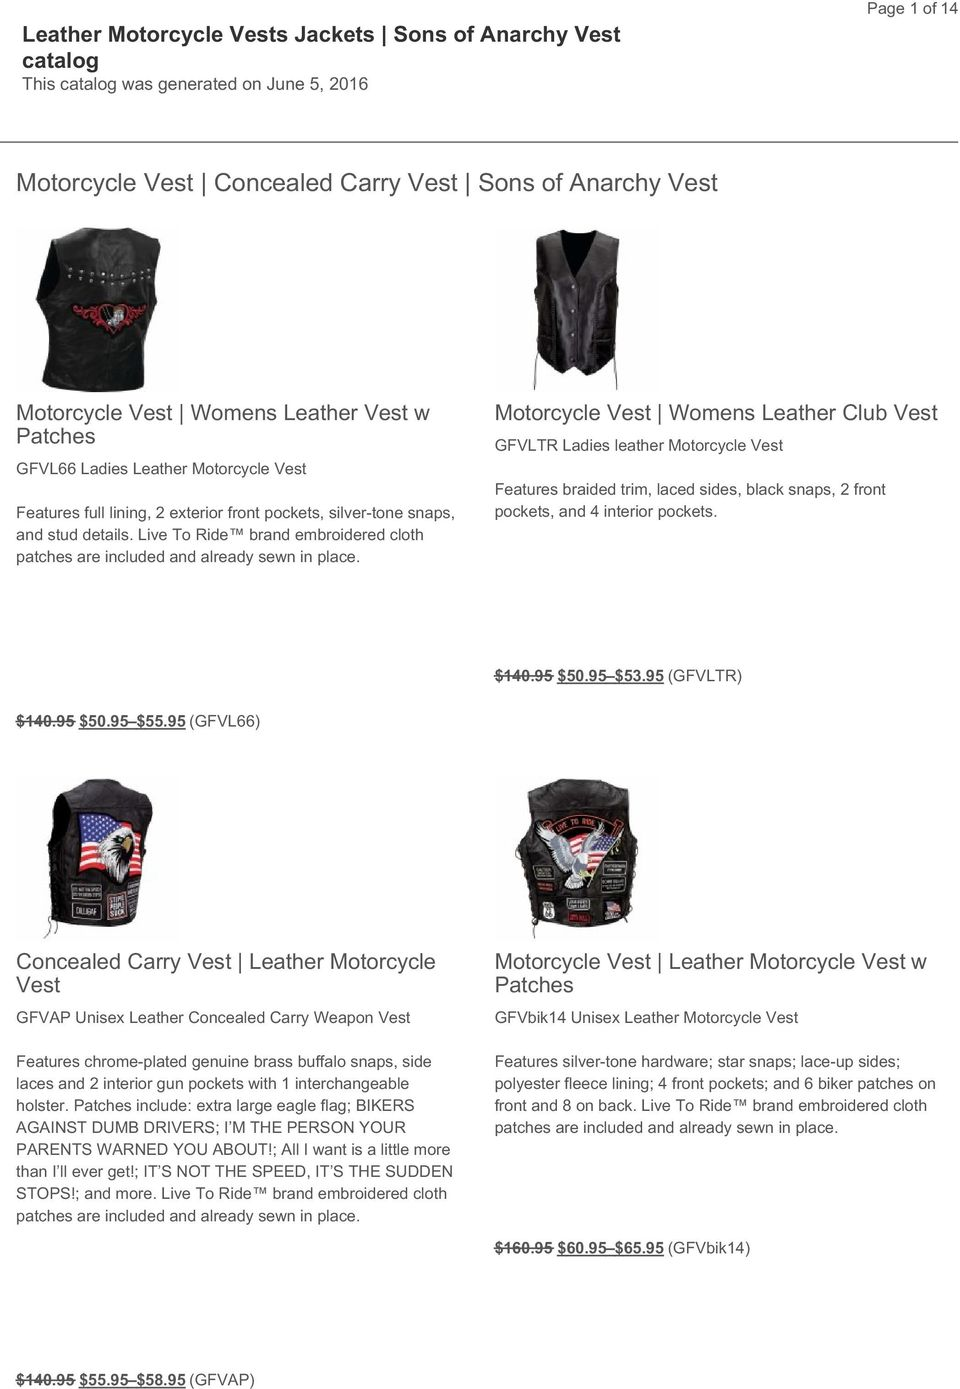 Motorcycle Vest Womens Leather Club Vest GFVLTR Ladies leather Motorcycle Vest Features braided trim, laced sides, black snaps, 2 front pockets, and 4 interior pockets. $140.95 $50.95 $53.